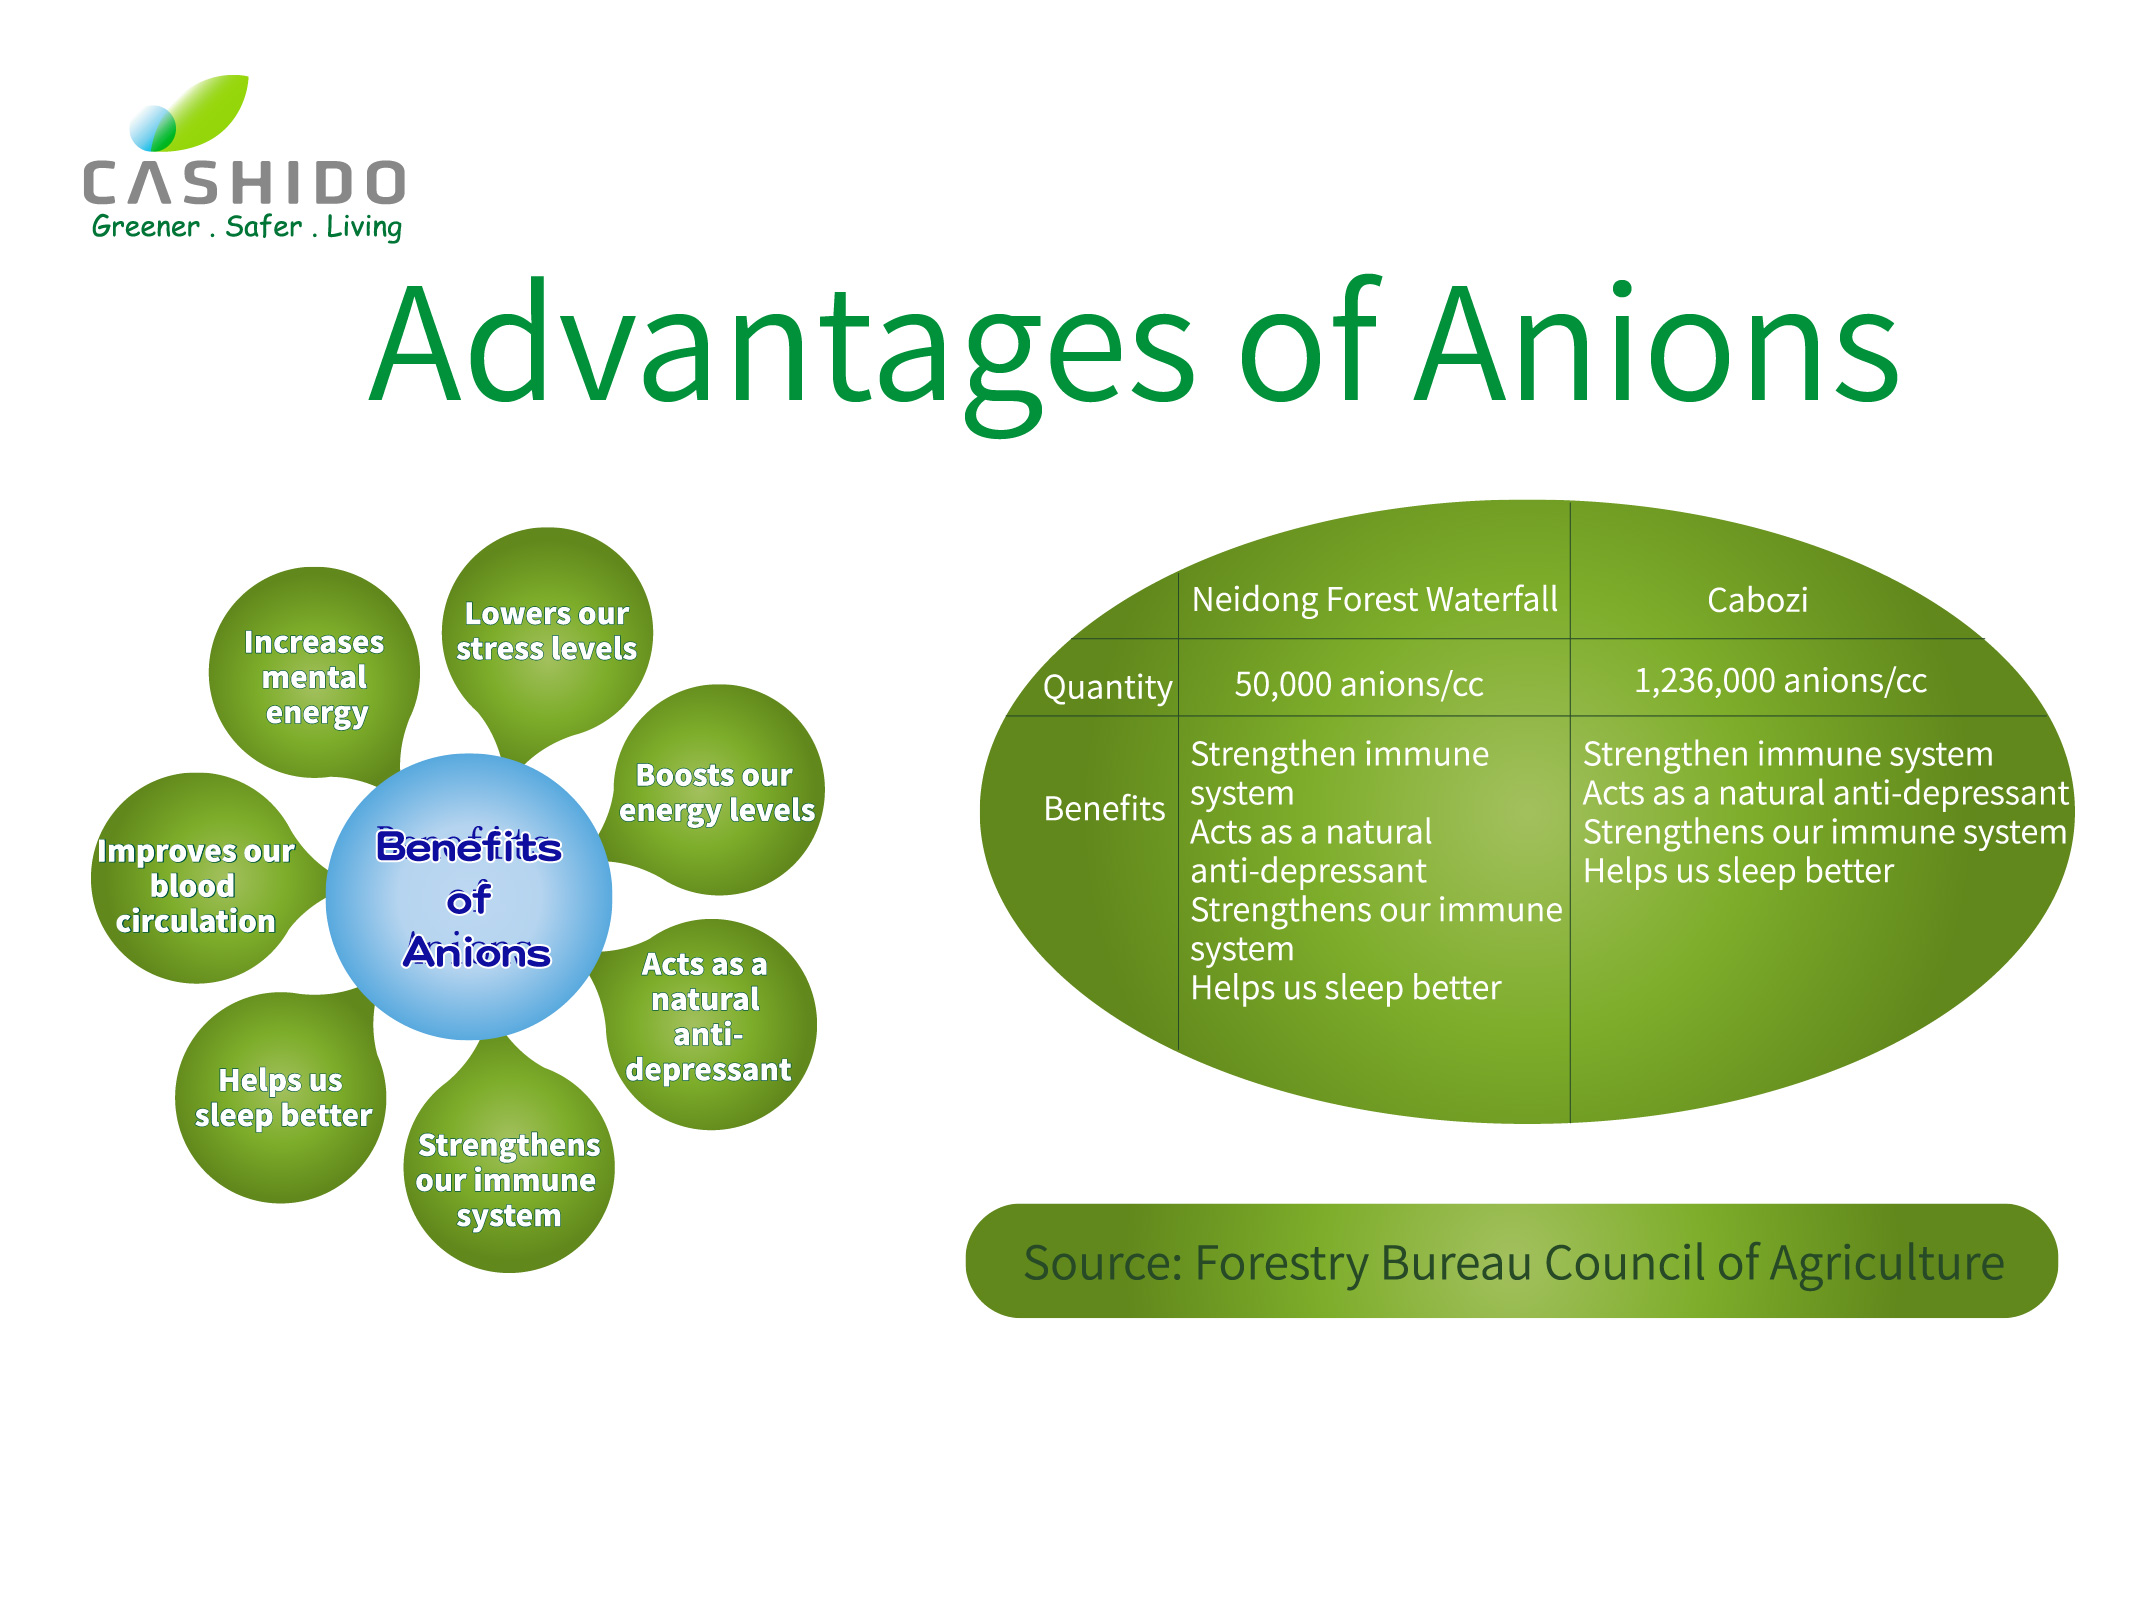 Advantages of Anions